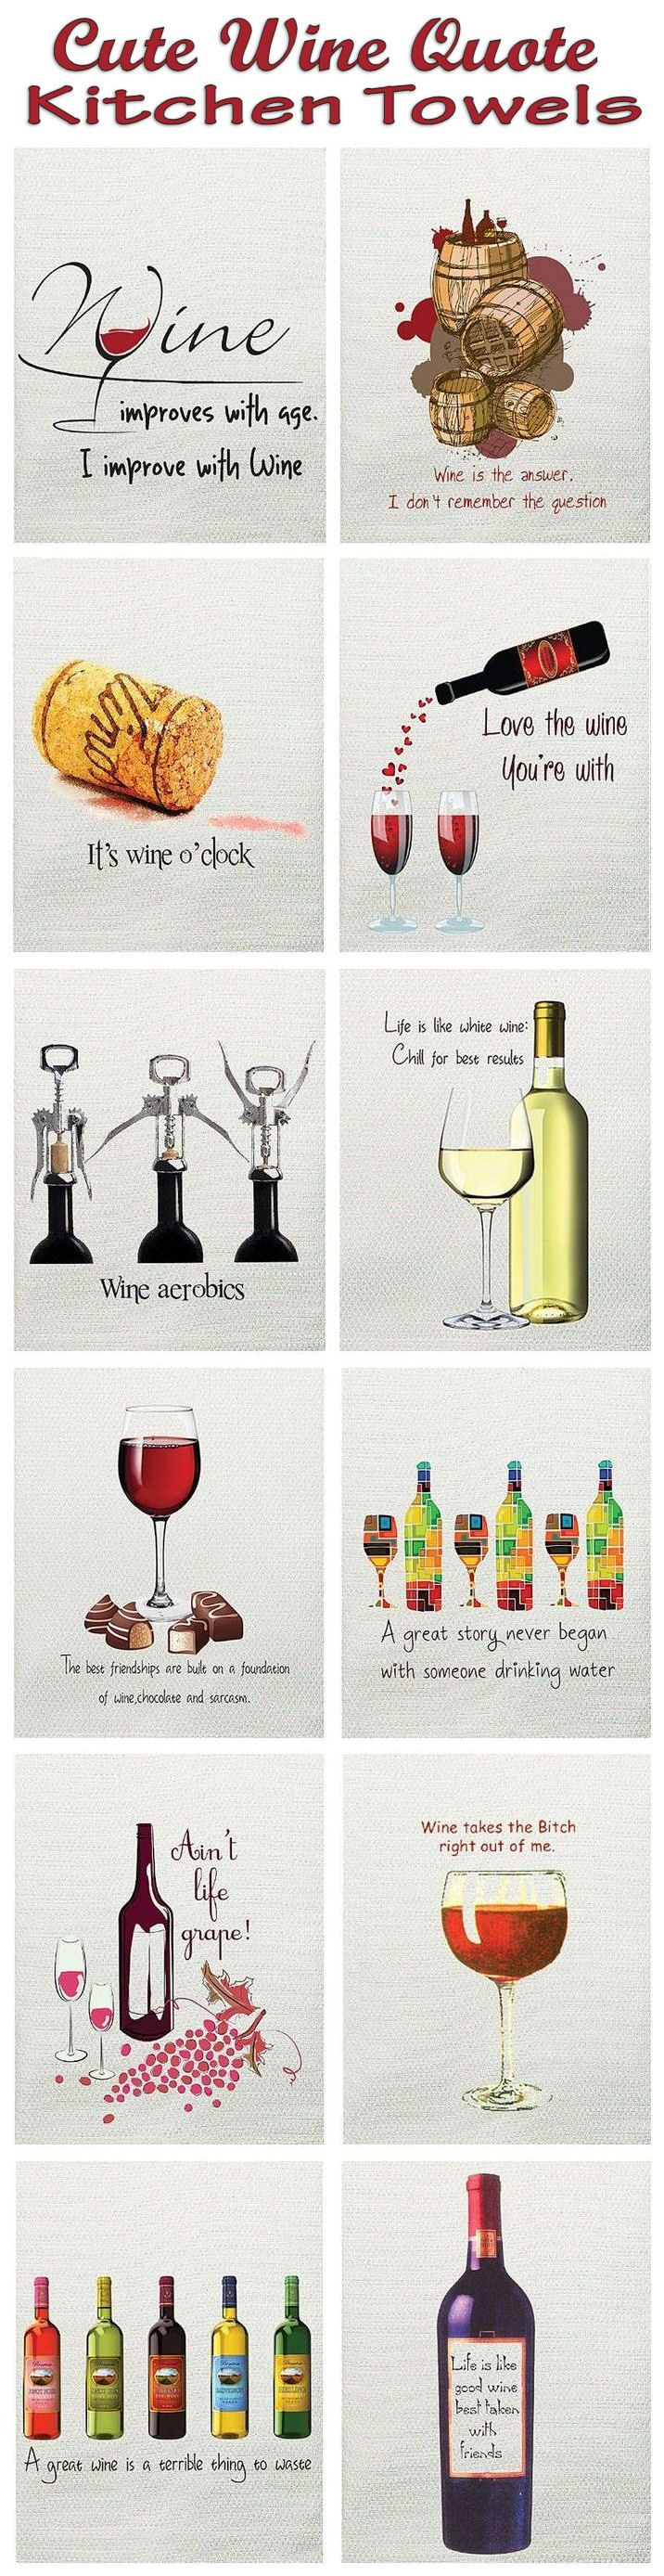 Cute Wine Quote Kitchen Towels ♥